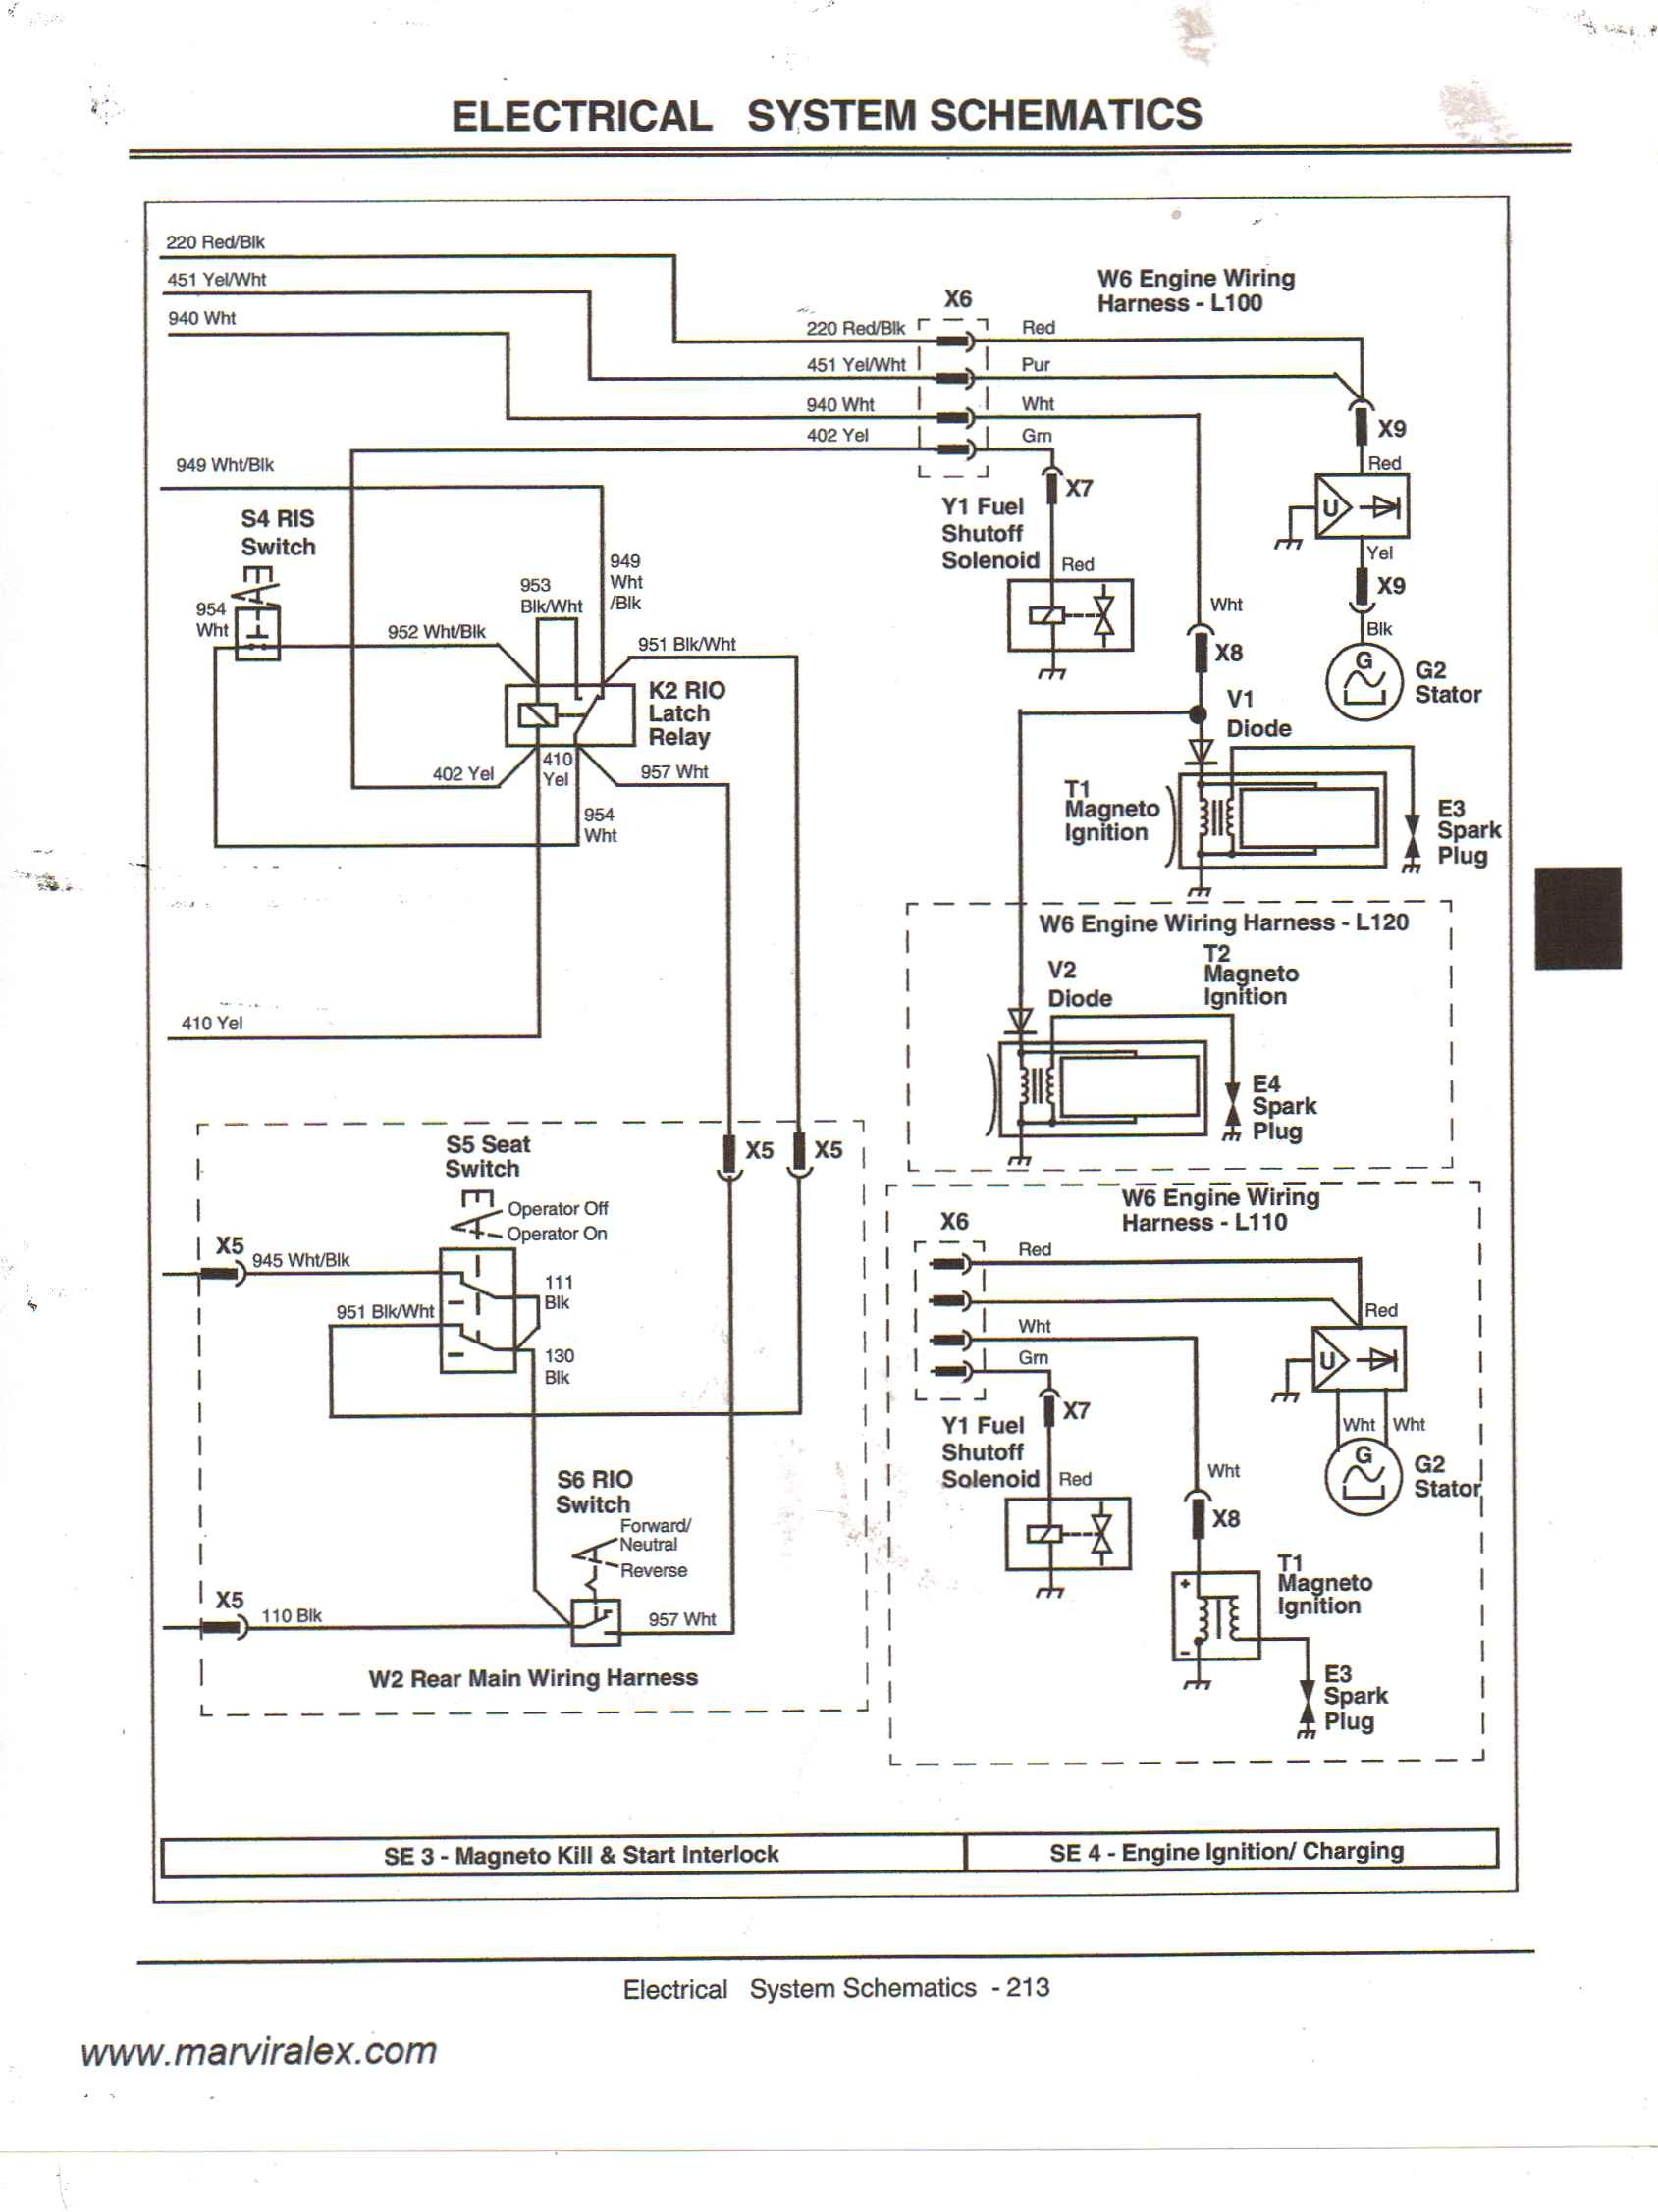 john deere 6400 wiring diagram wiring diagram portal u2022 rh getcircuitdiagram today john deere 6400 wiring diagram john deere 6400 fuse panel diagram